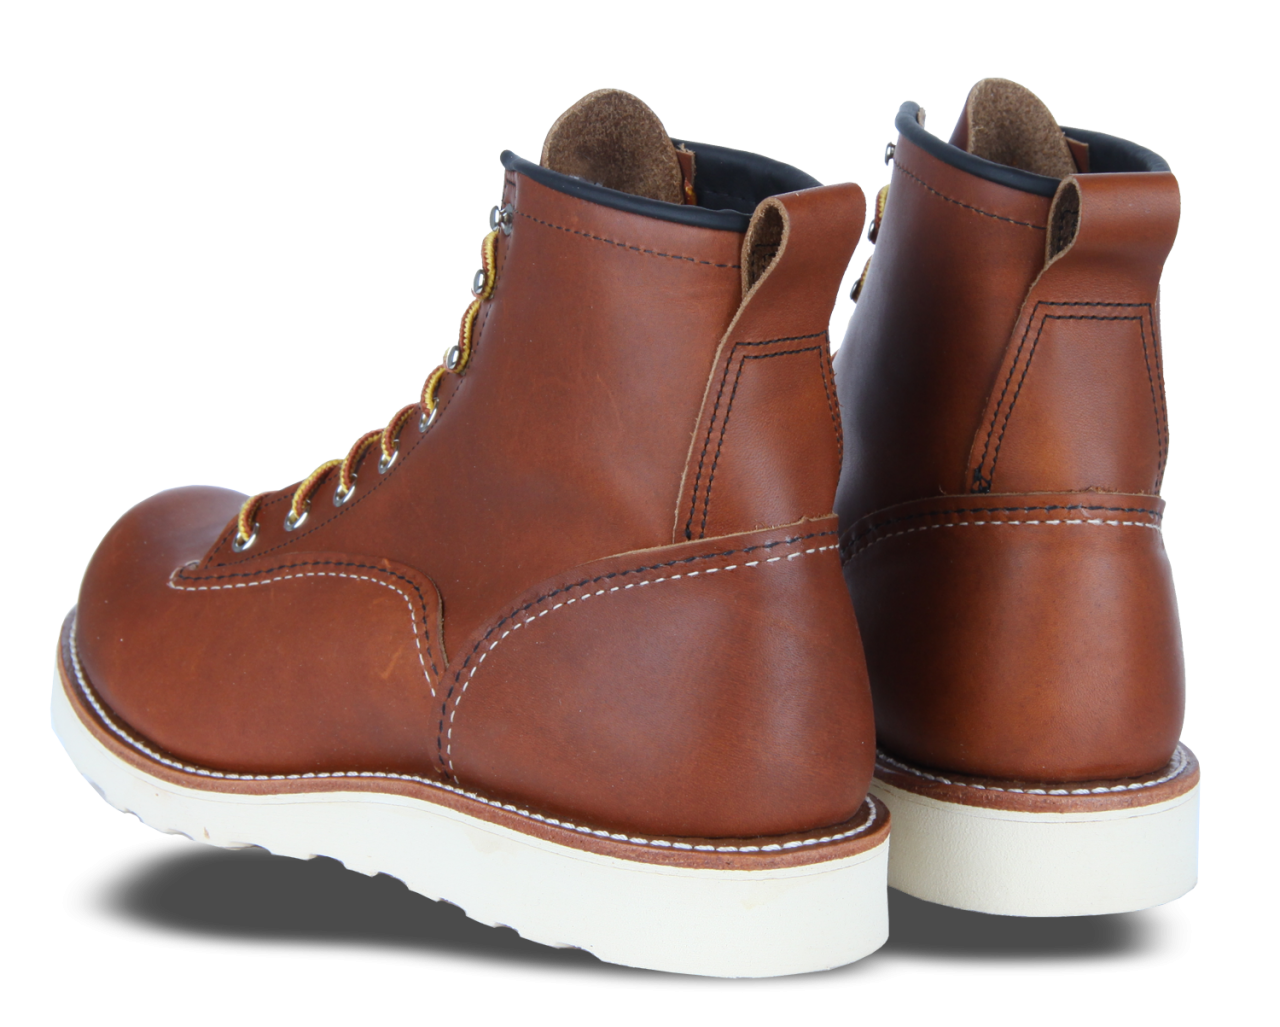 Red Wing 2904 Lineman Limited Edition